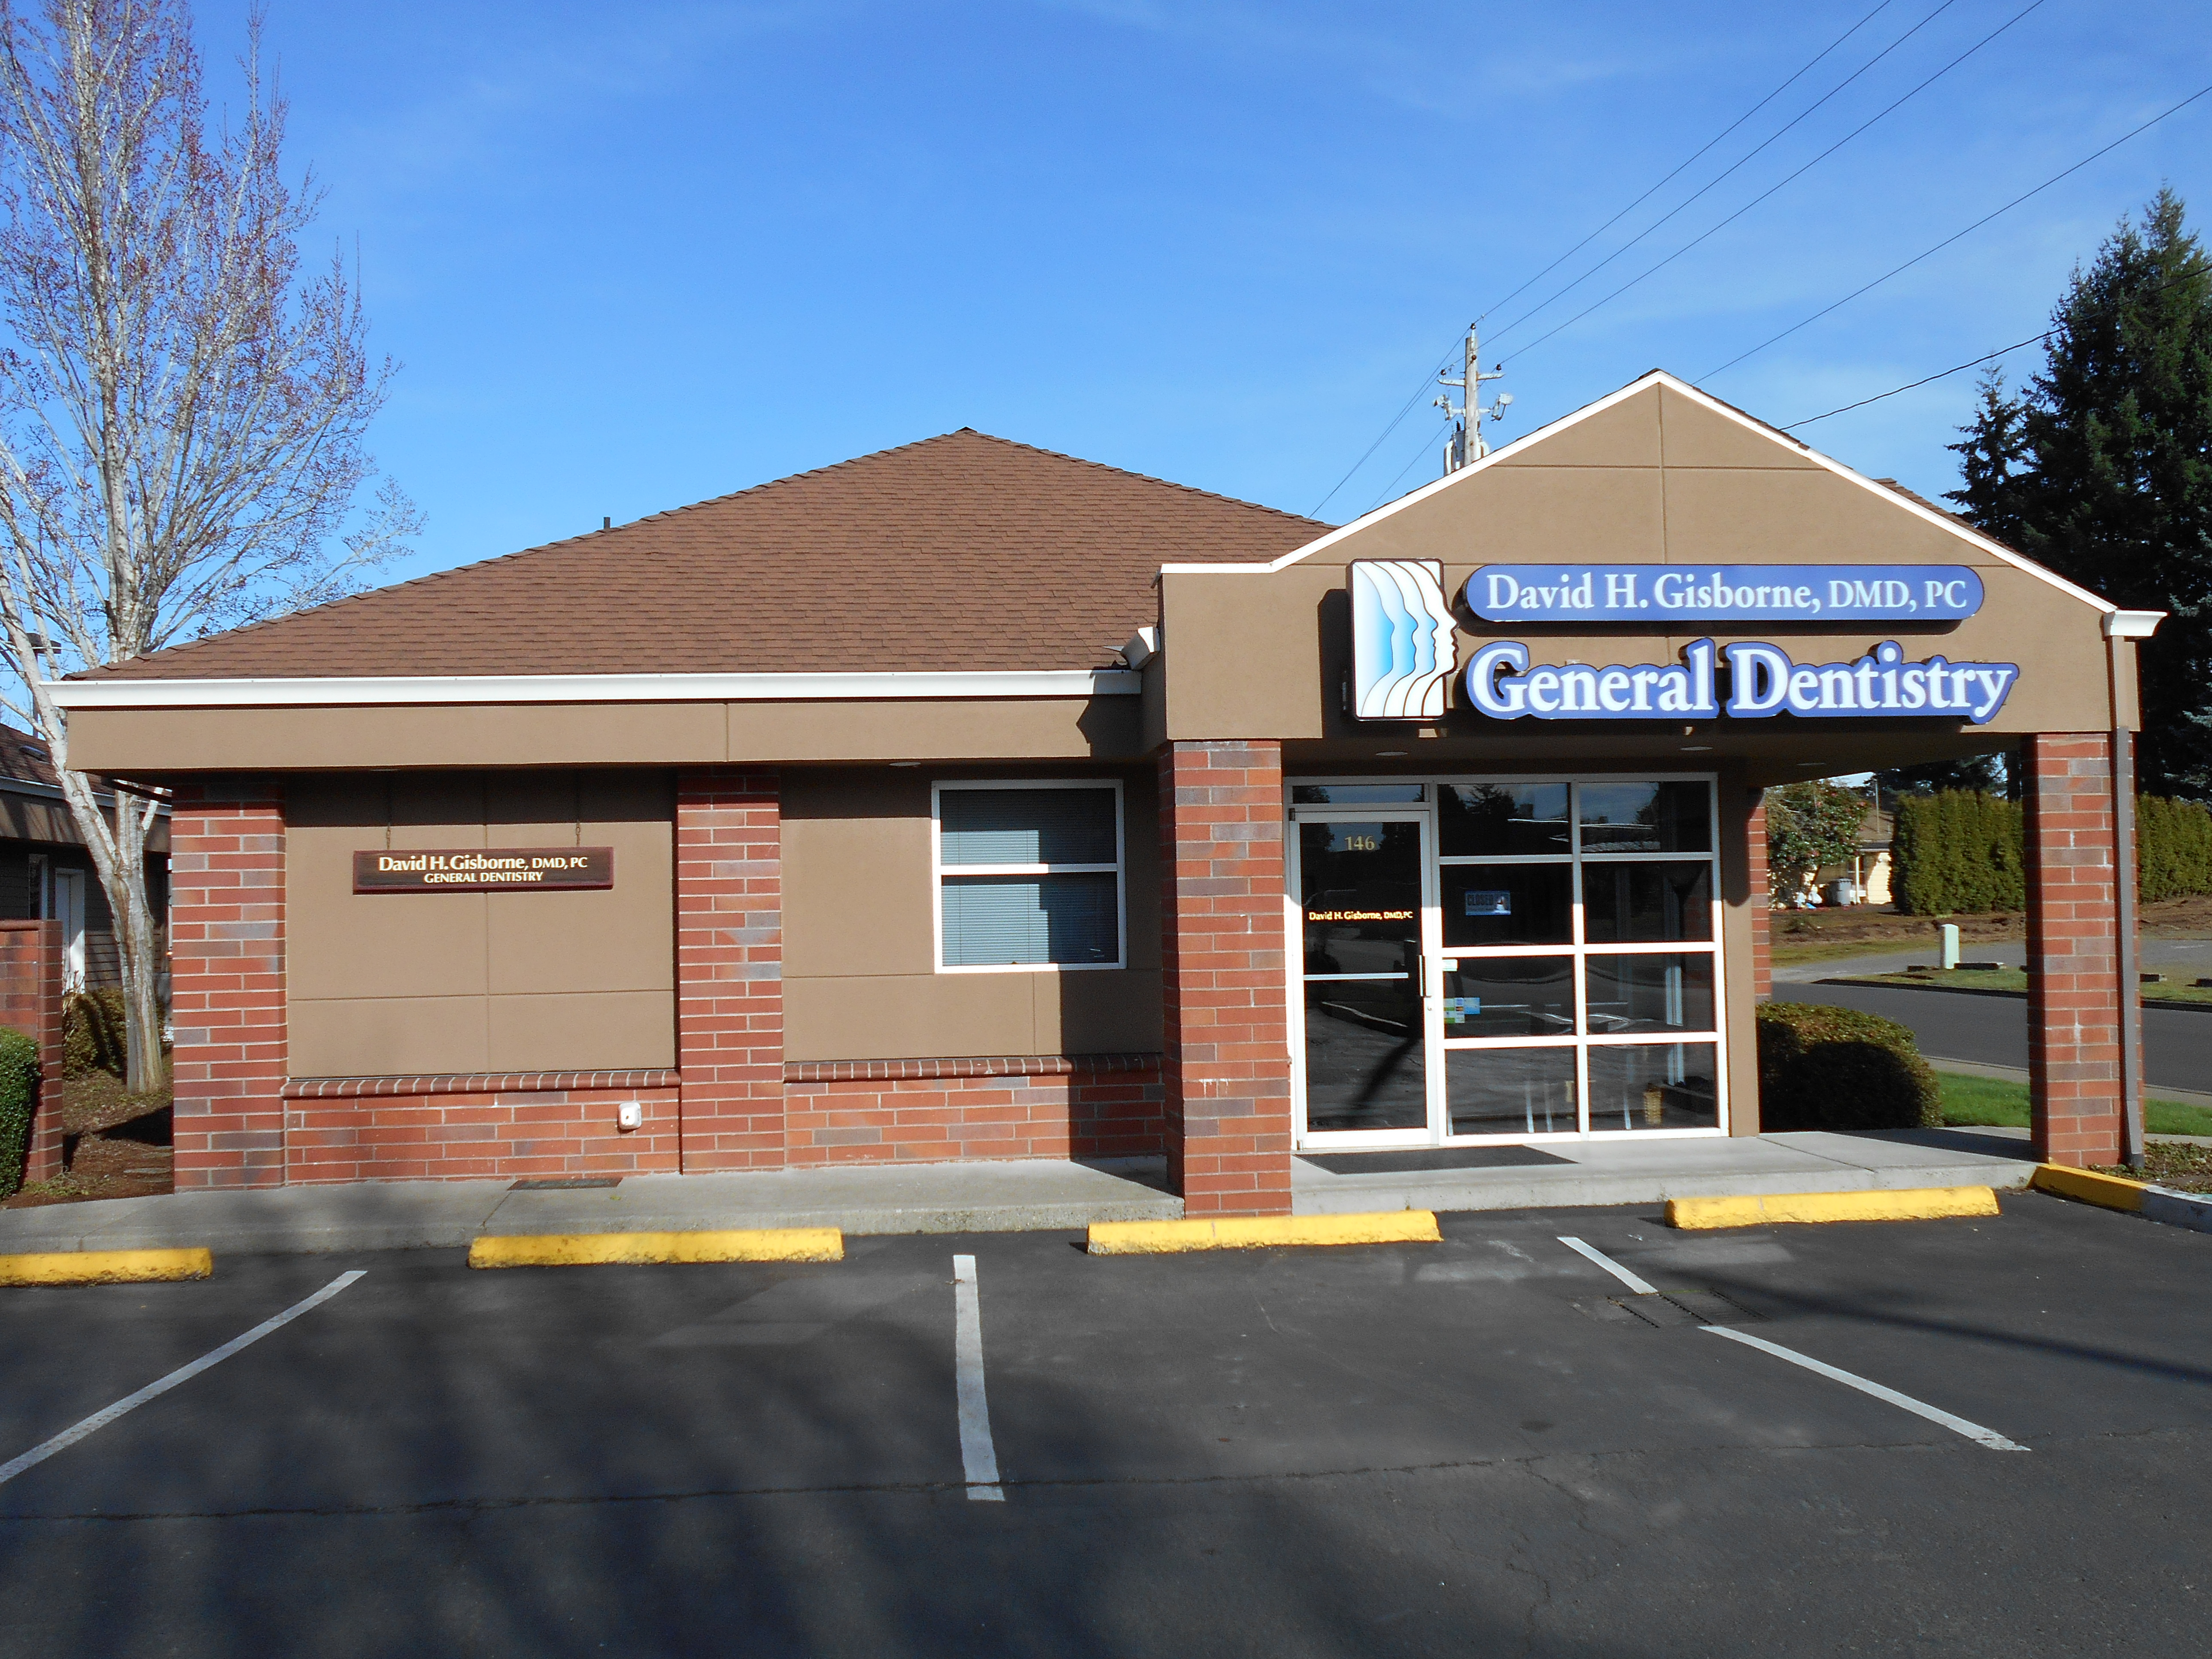 Dr. David H. Gisborne, Family Dentist | 146 SW 2nd Ave, Canby, OR, 97013 | +1 (503) 266-5596